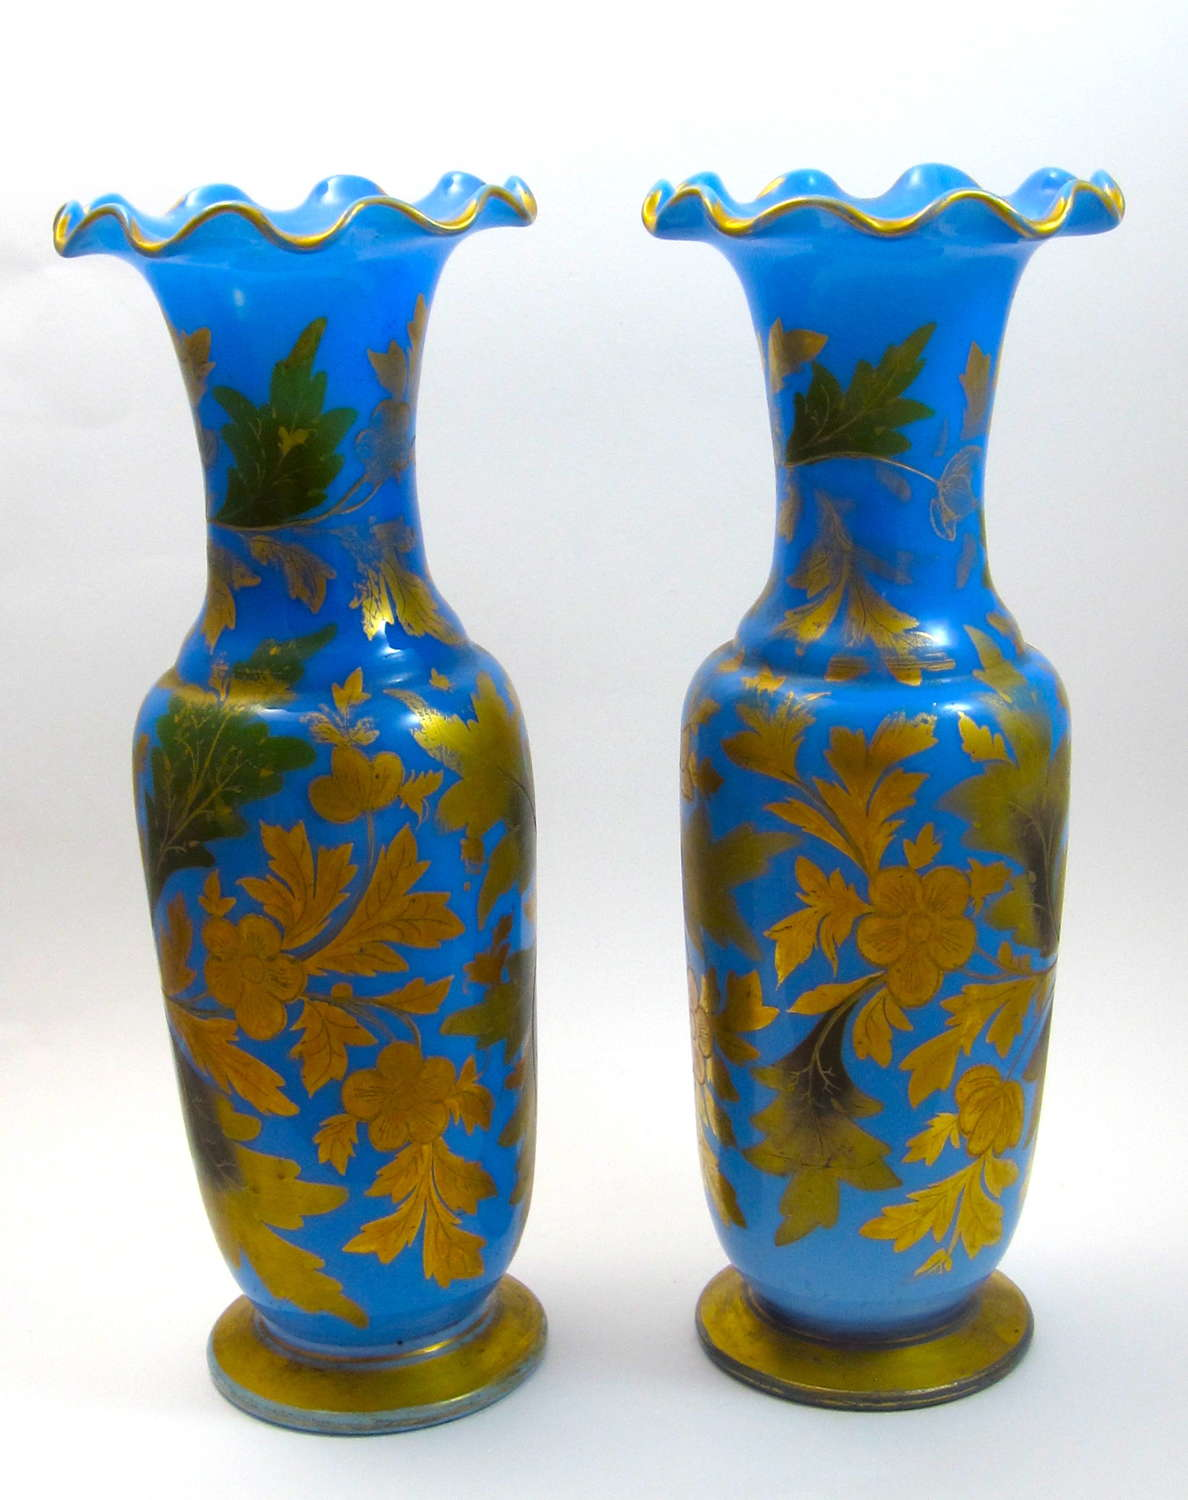 A Tall Pair of High Quality Baccarat Blue Opaline Glass Vases